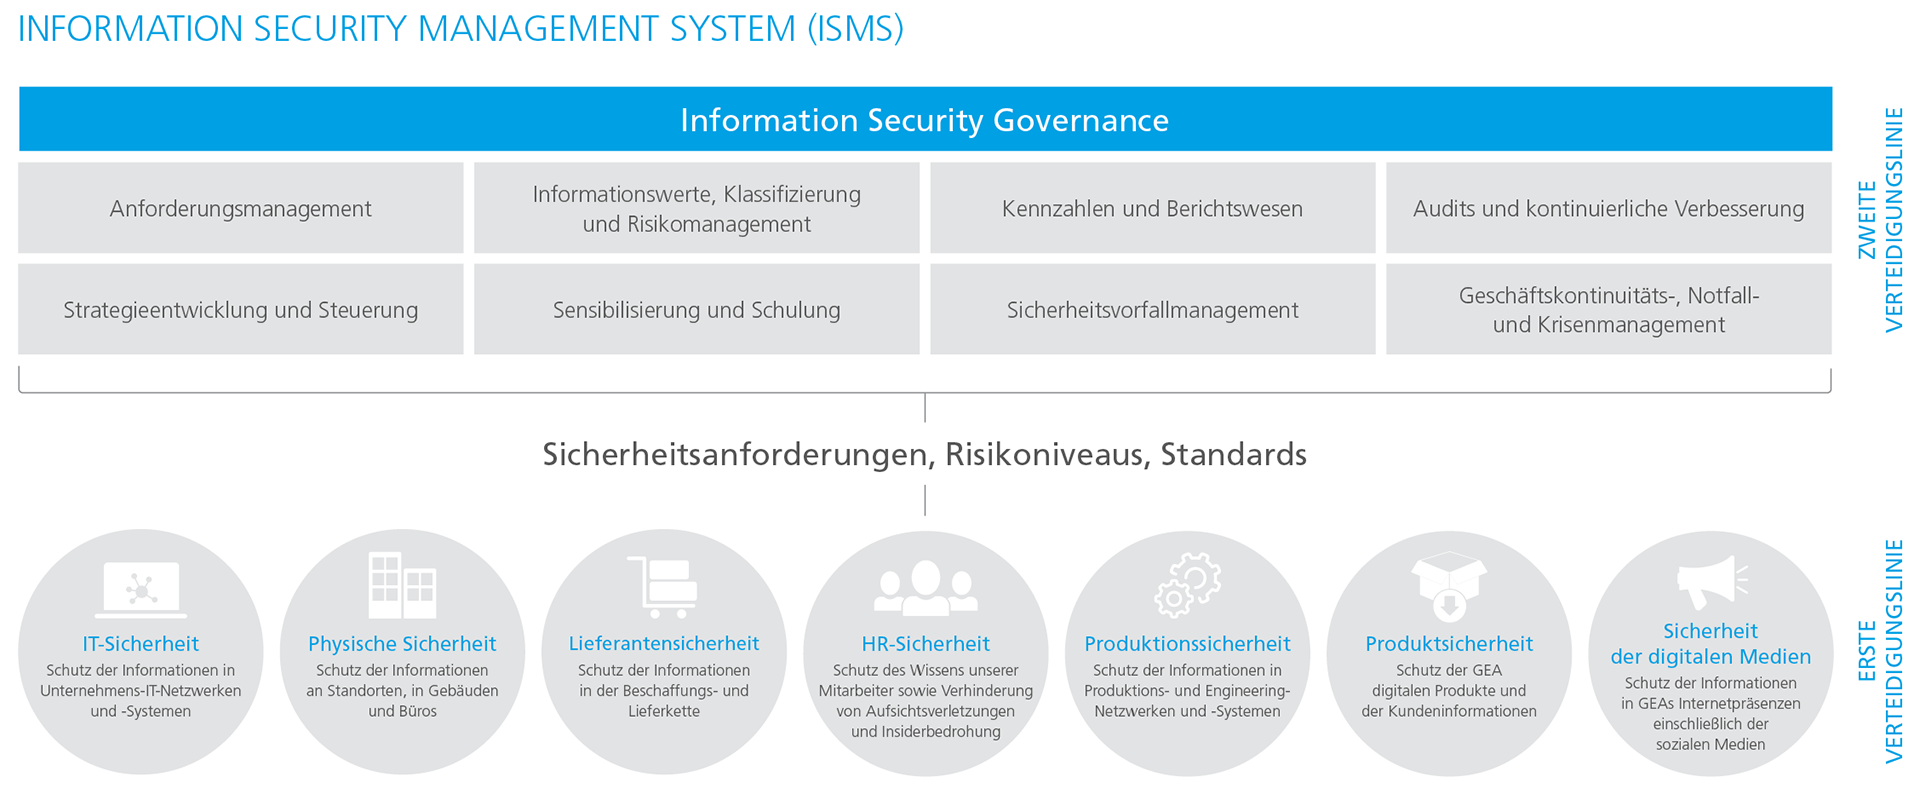 Global Information Security Management System (ISMS) based on ISO/IEC 27001